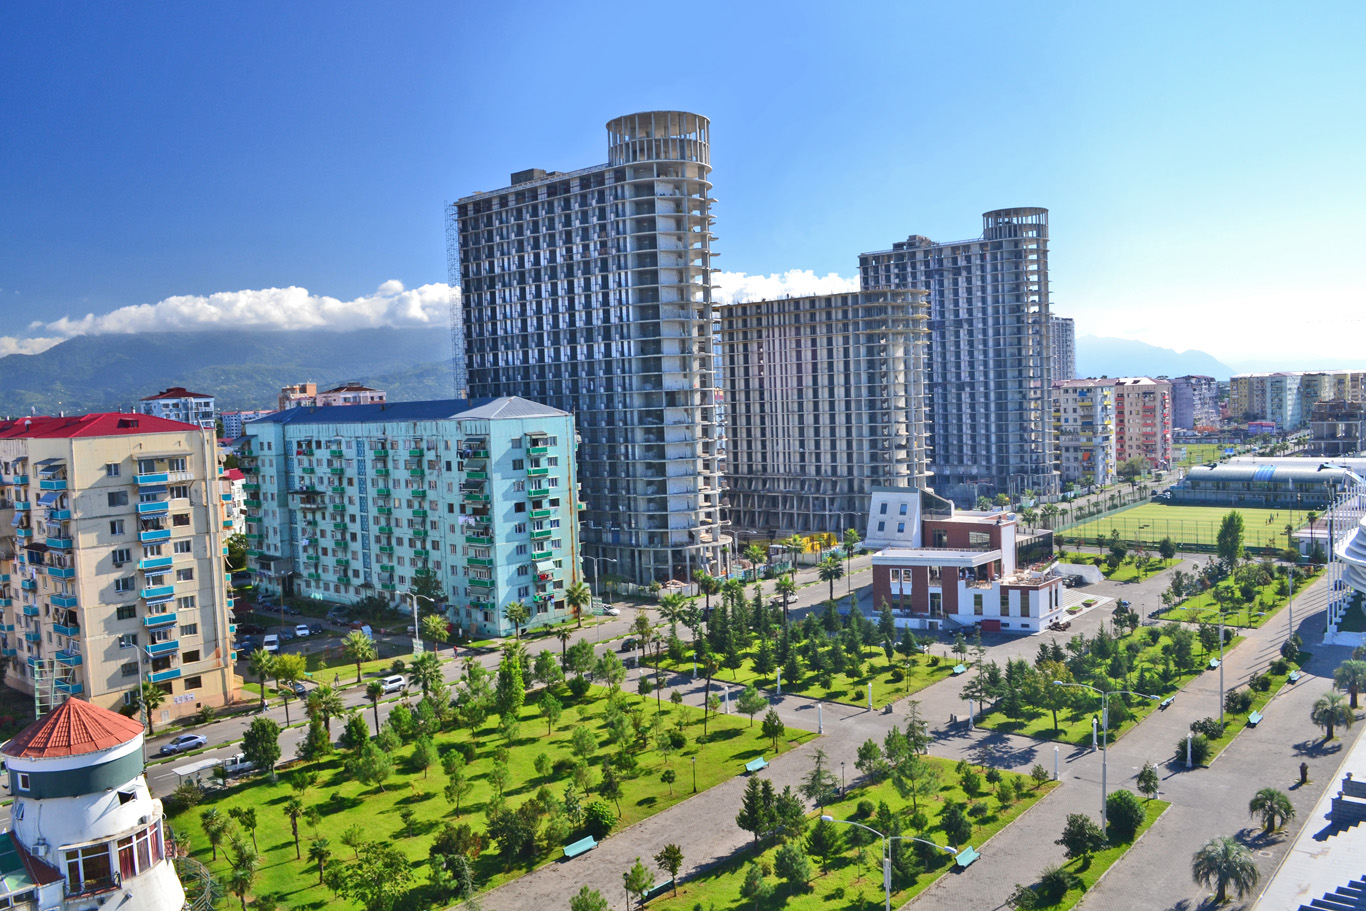 Colorful soviet-era buildings among new hotels under construction